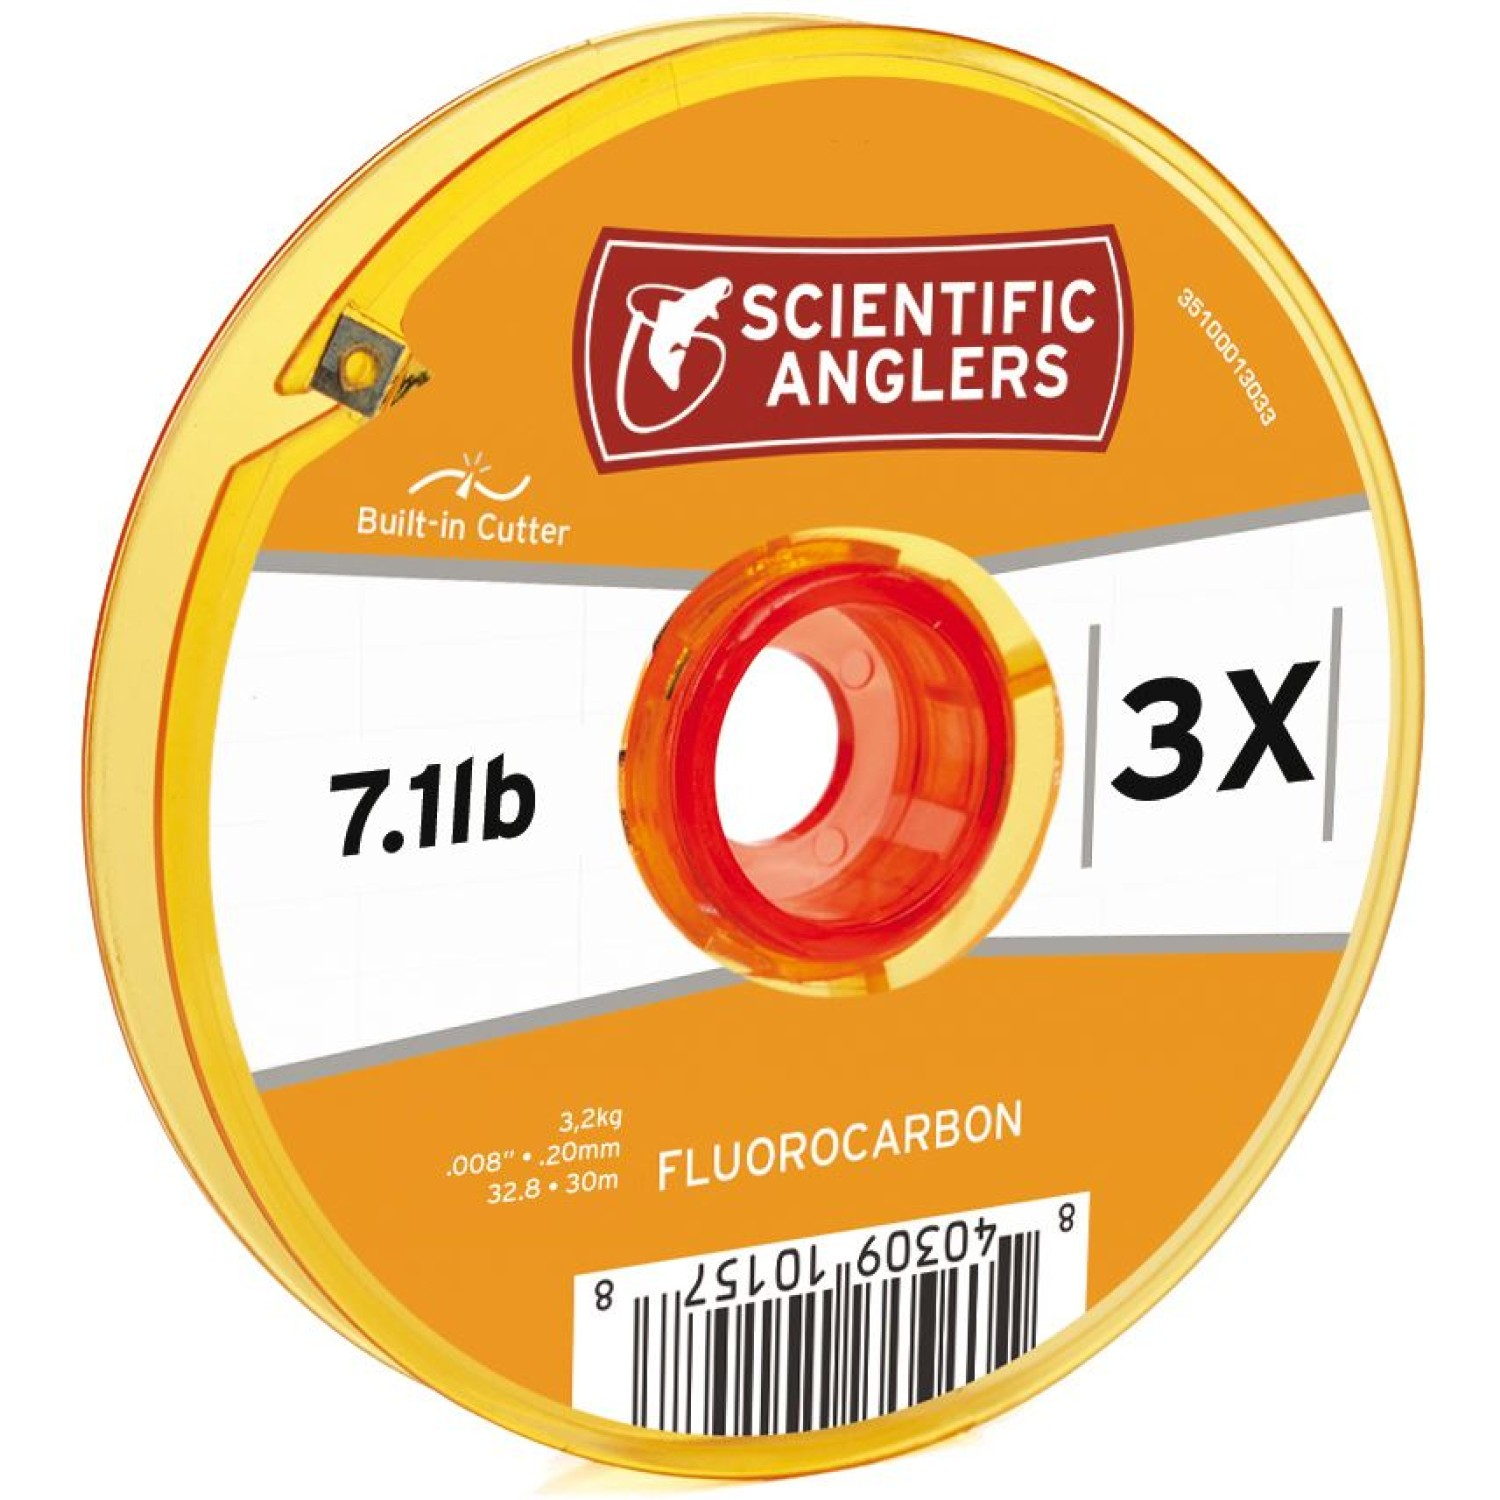 Scientific Anglers - Fluorocarbon Tippet 30m